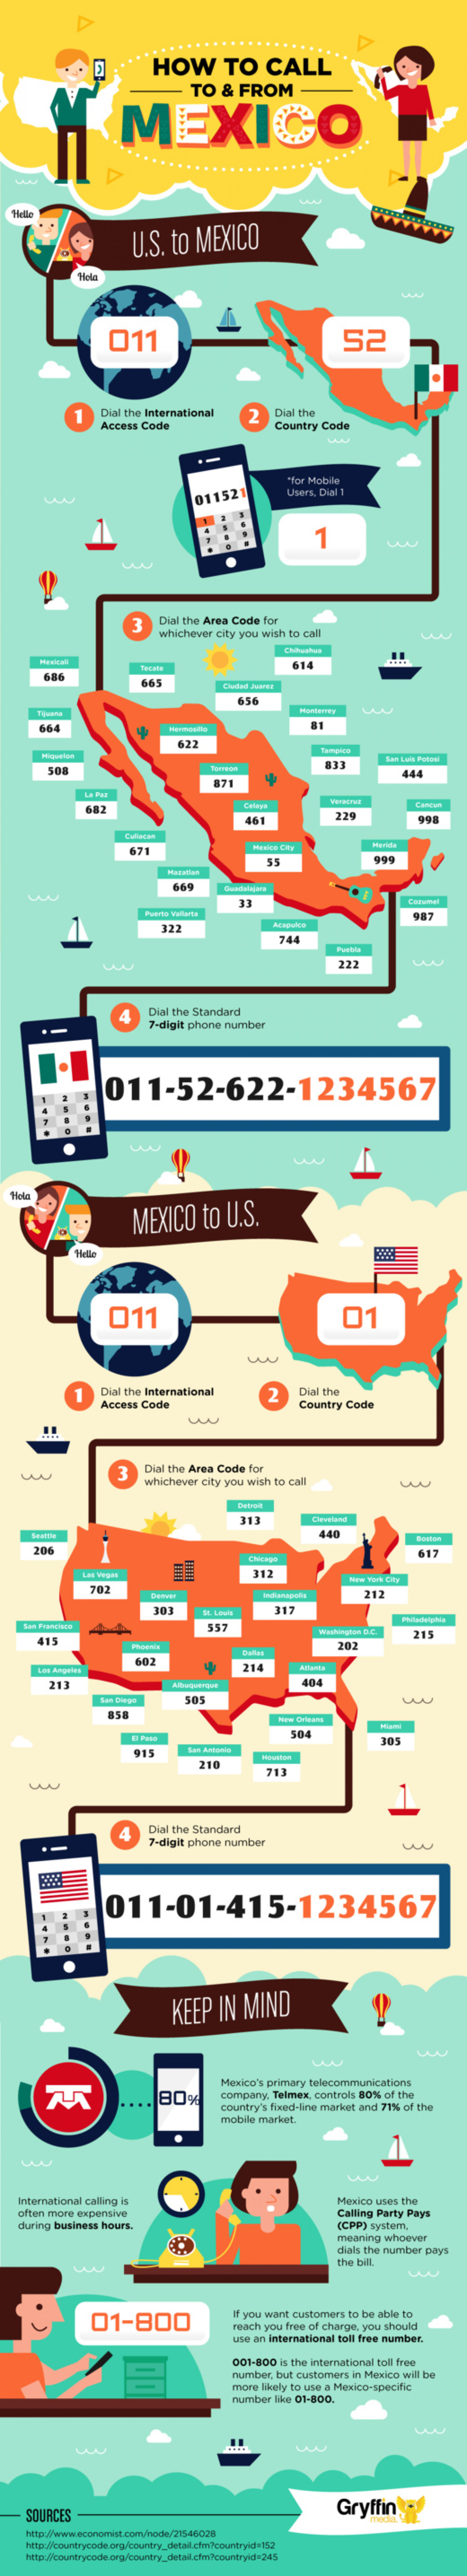 How to Call to and From Mexico Infographic